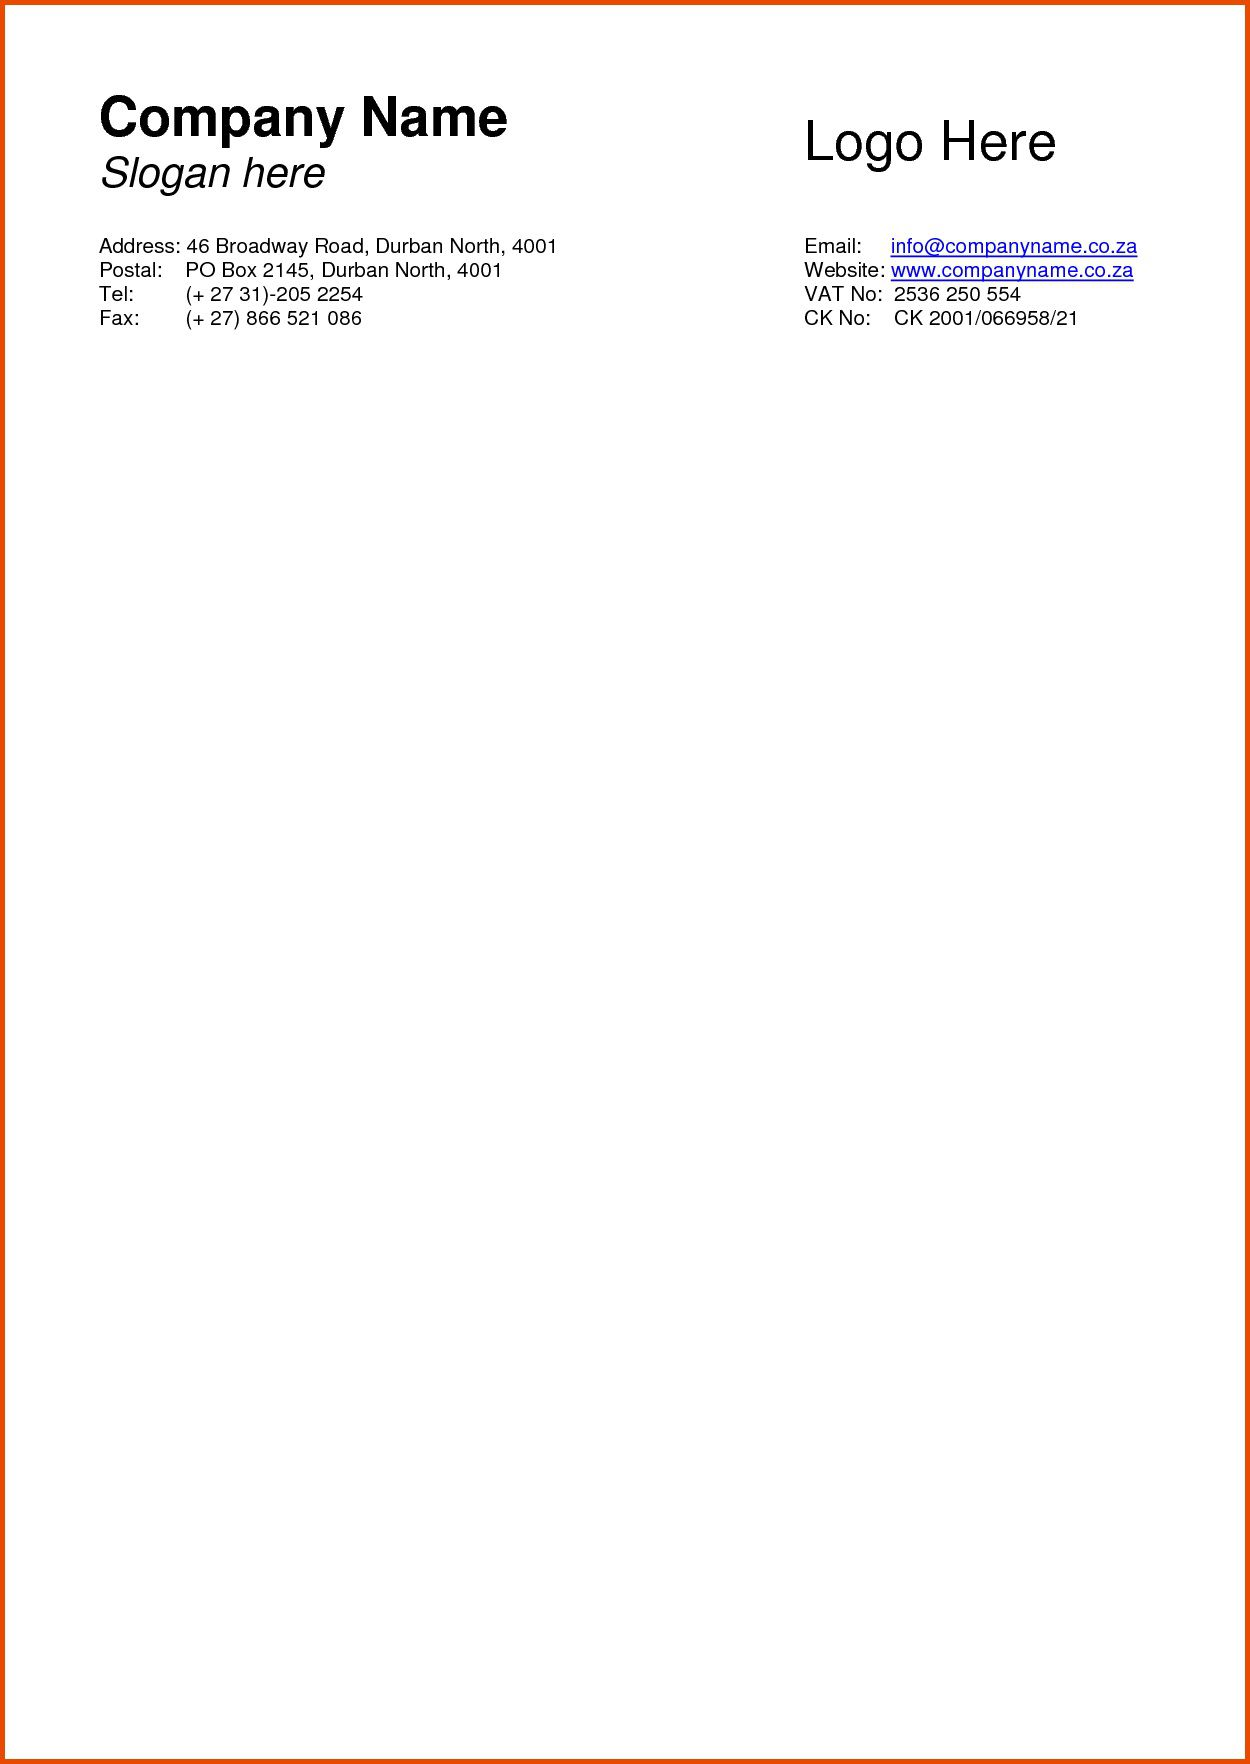 004 Amazing Company Letterhead Template Word High Definition  Busines 2007 Free DownloadFull